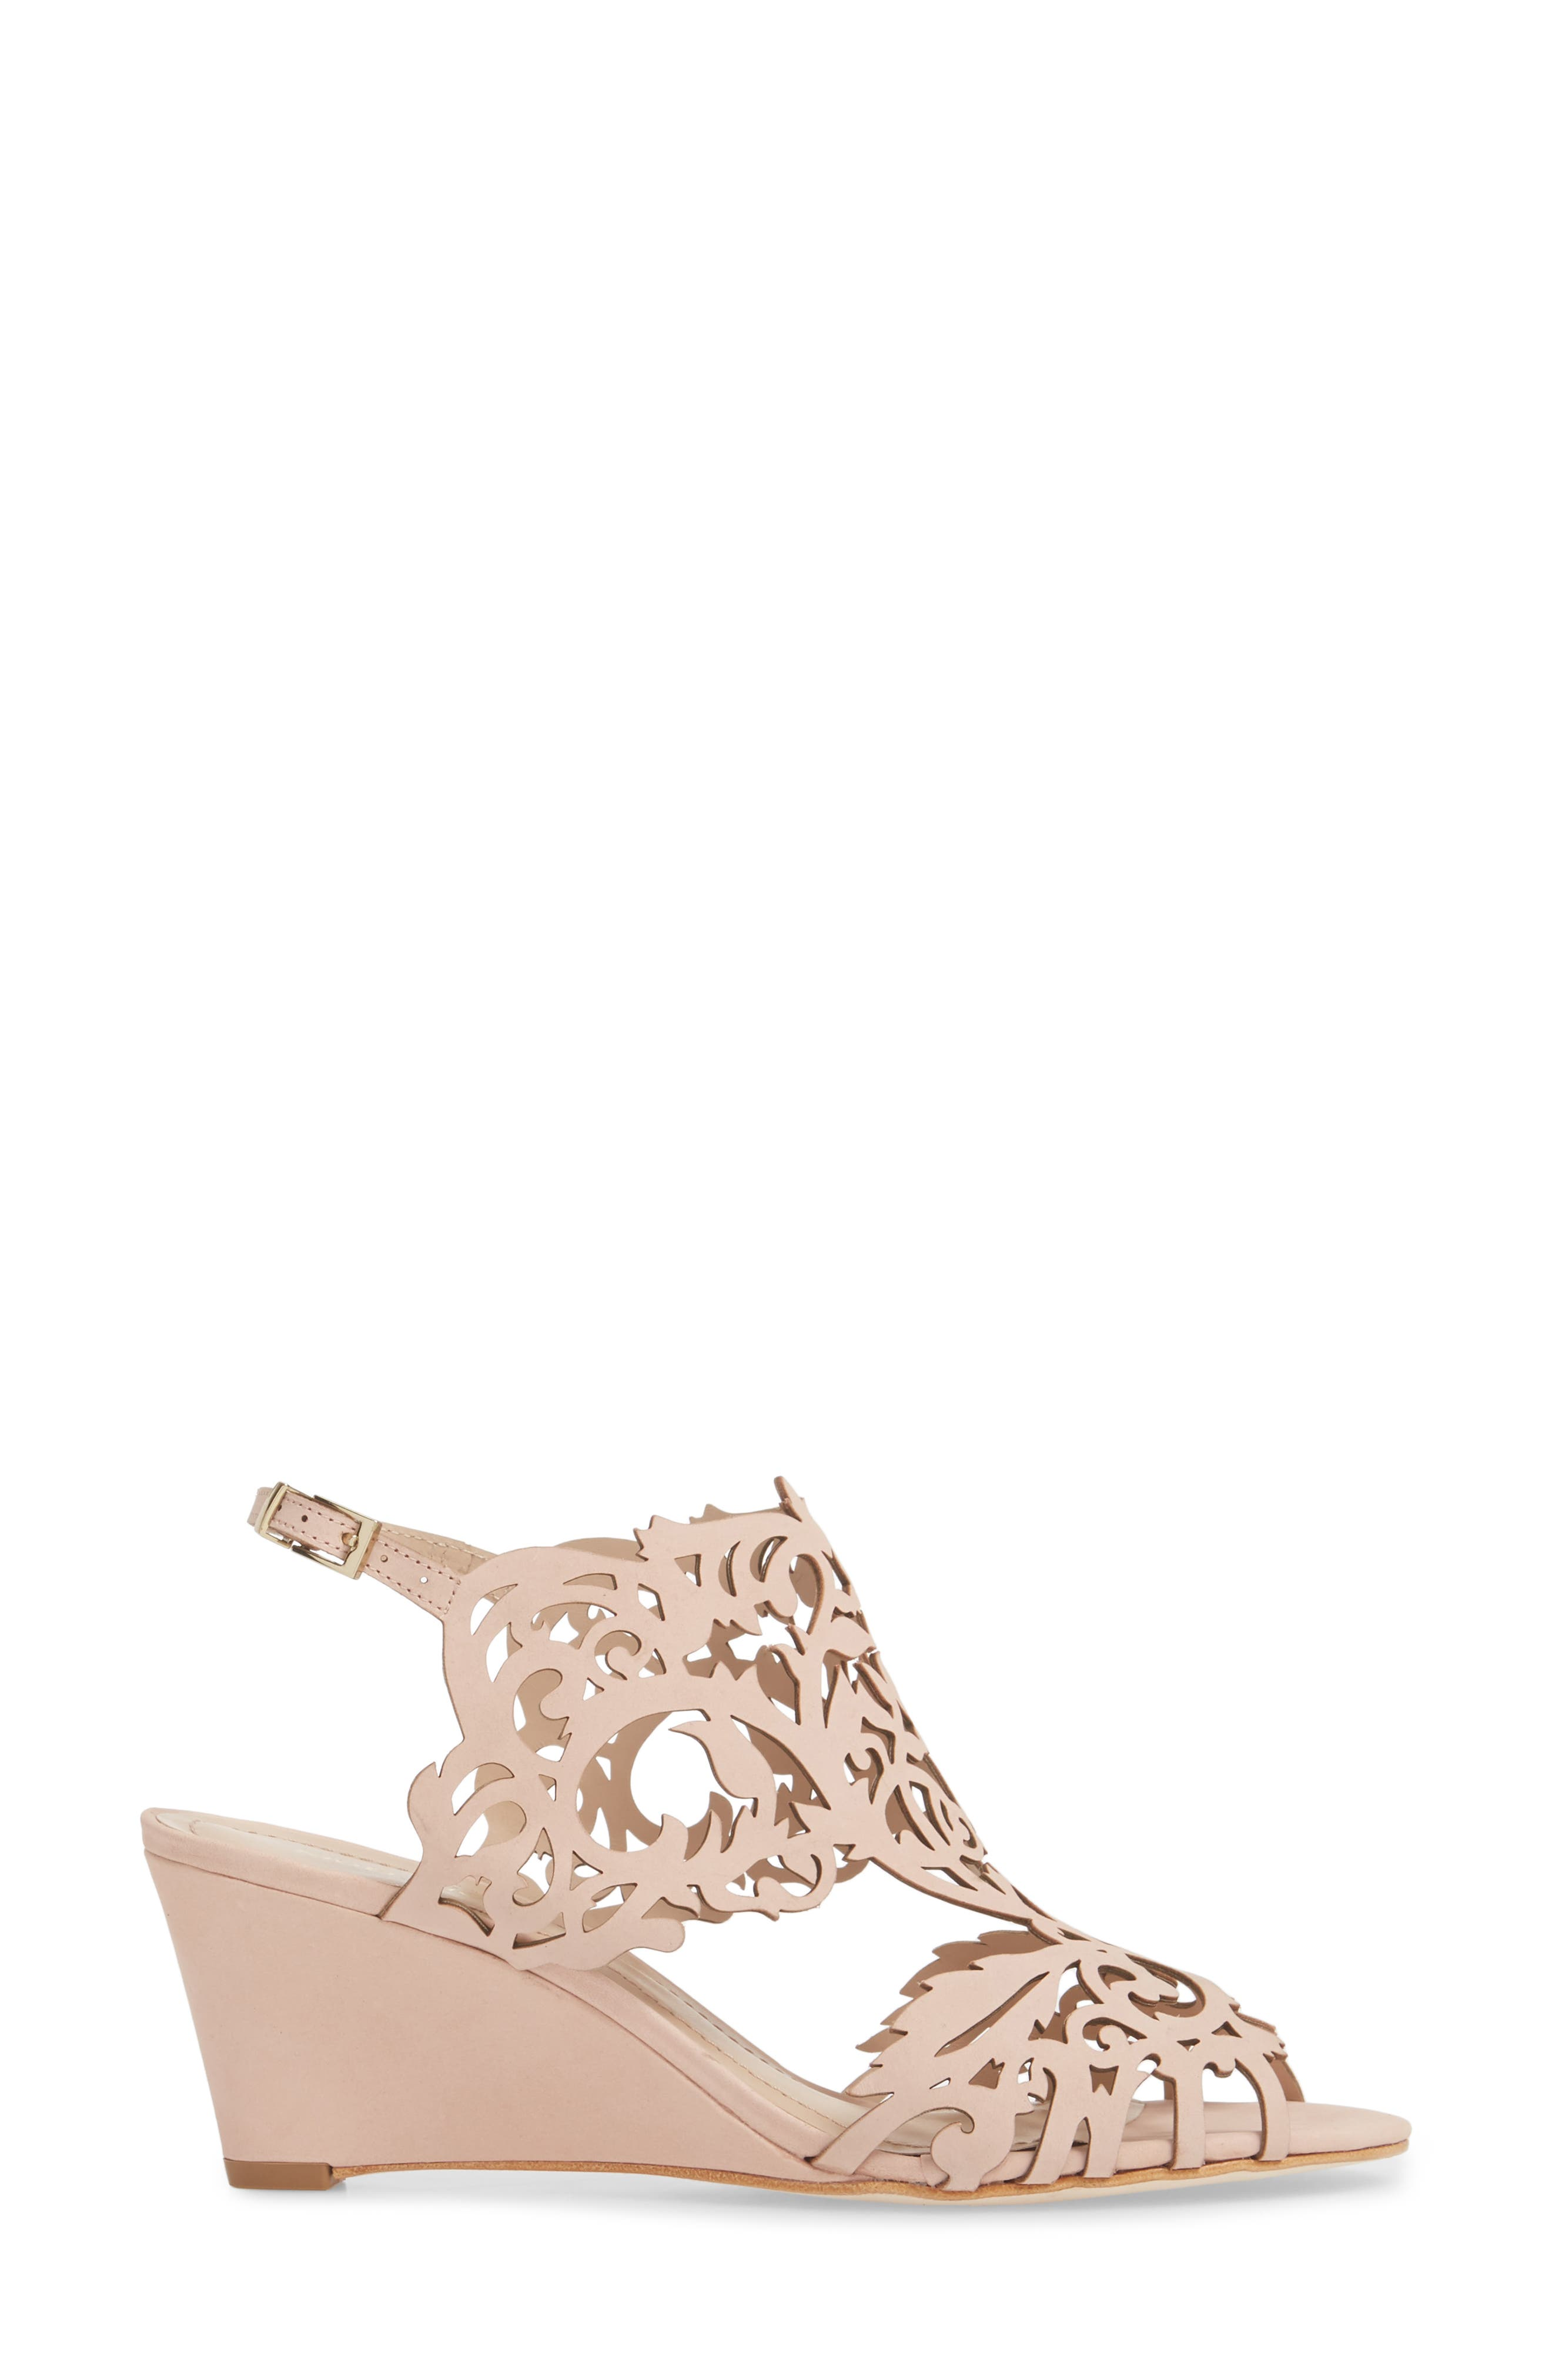 Marcela Laser Cutout Wedge Sandal,                             Alternate thumbnail 3, color,                             Blush Leather